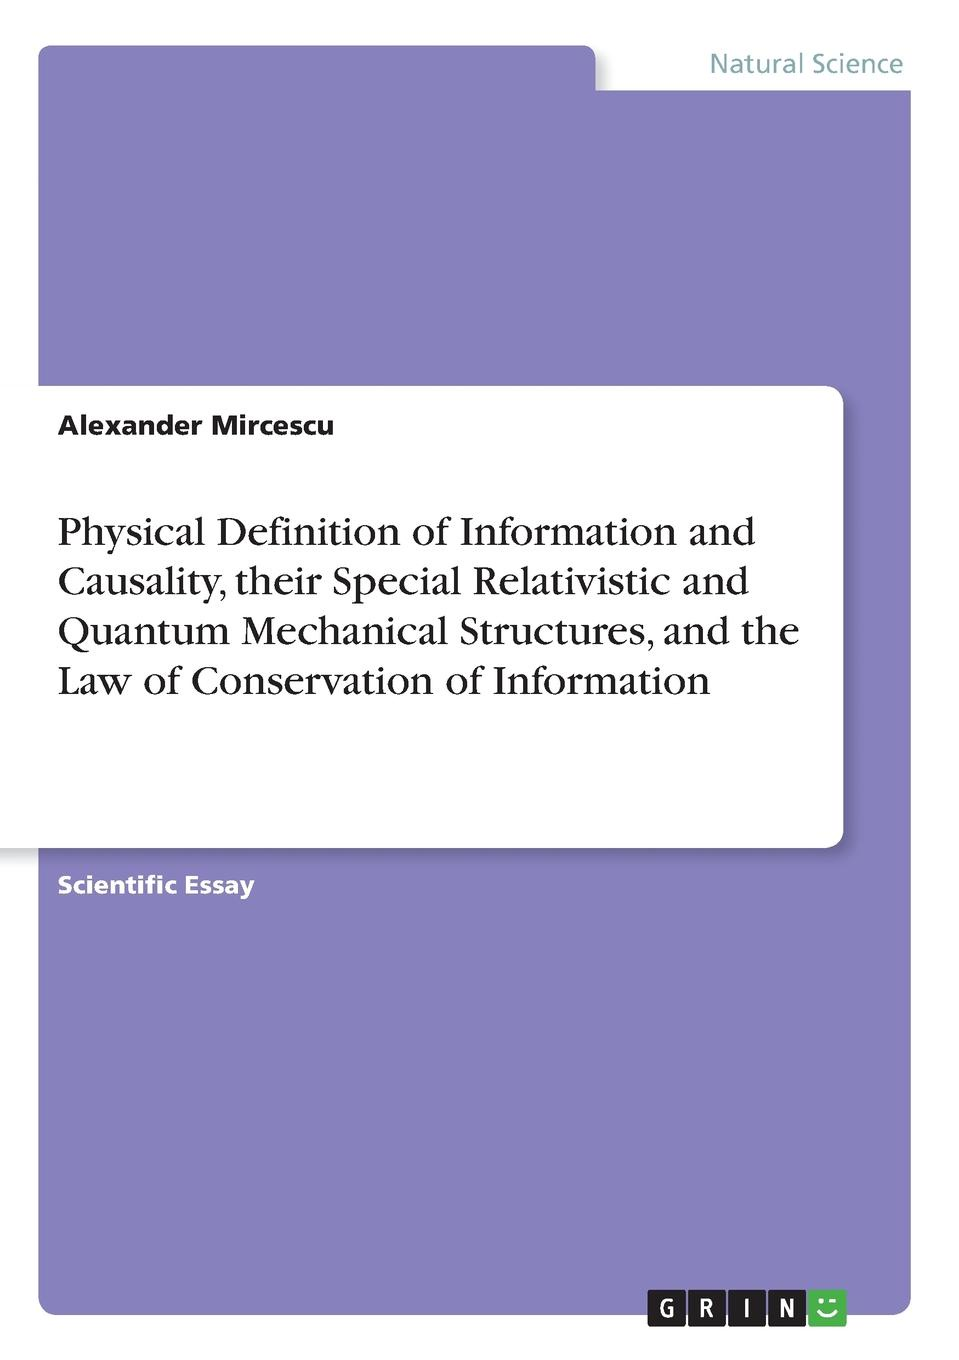 Alexander Mircescu Physical Definition of Information and Causality, their Special Relativistic and Quantum Mechanical Structures, and the Law of Conservation of Information цена и фото